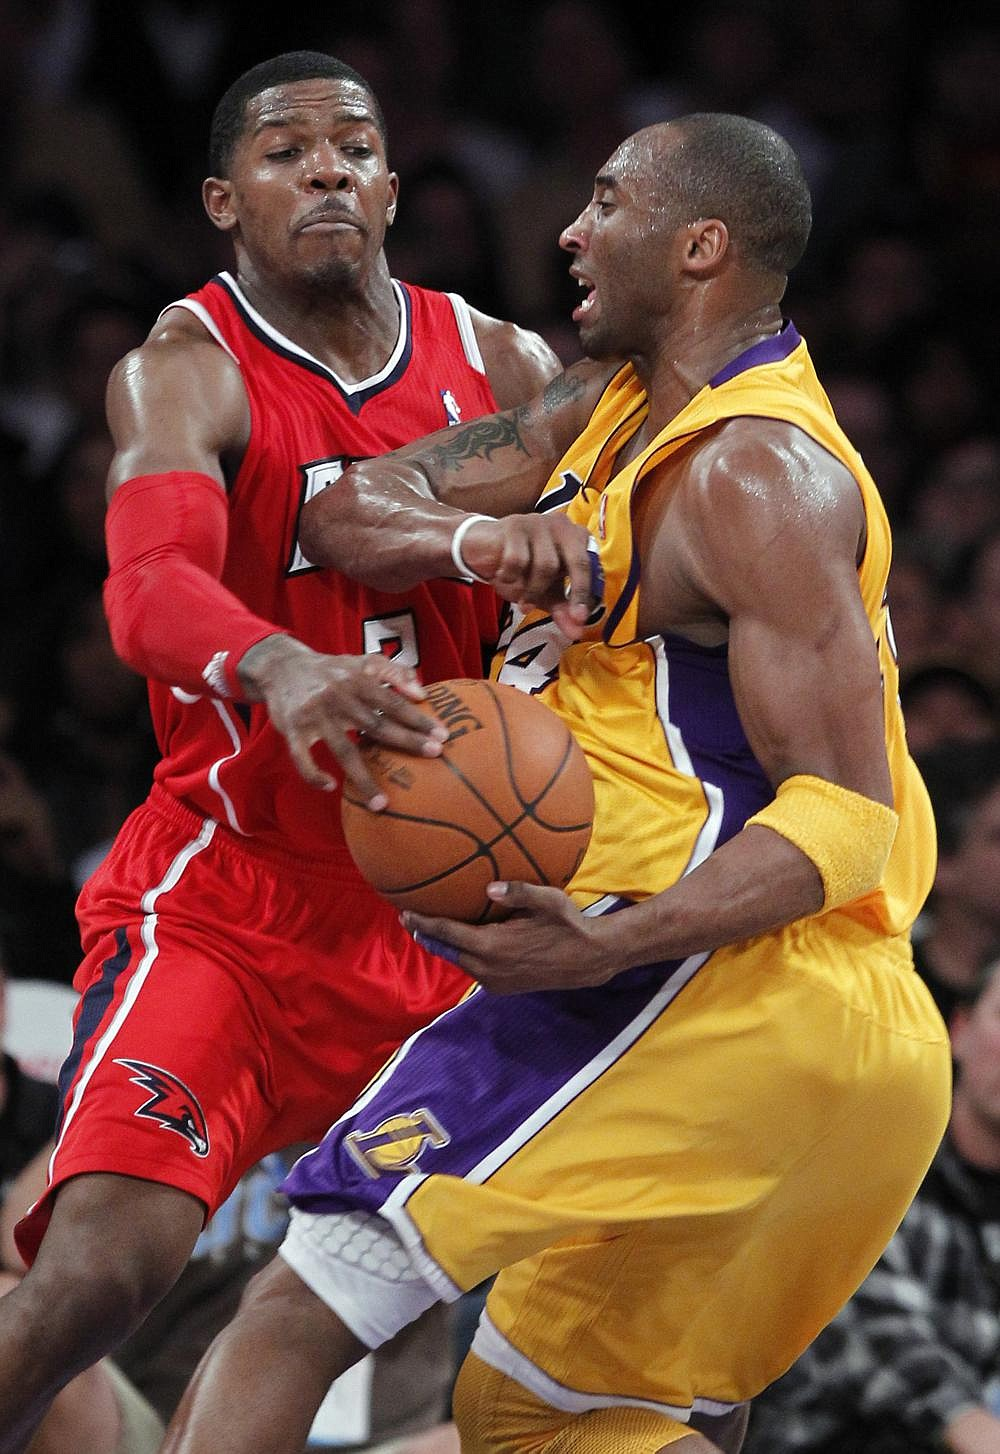 Former Arkansas guard Joe Johnson (left) strips the ball from Kobe Bryant during an NBA game in 2011. Johnson played 17 years in the NBA and was a seven-time All-Star, finishing with 20,405 points in his career. (AP file photo)